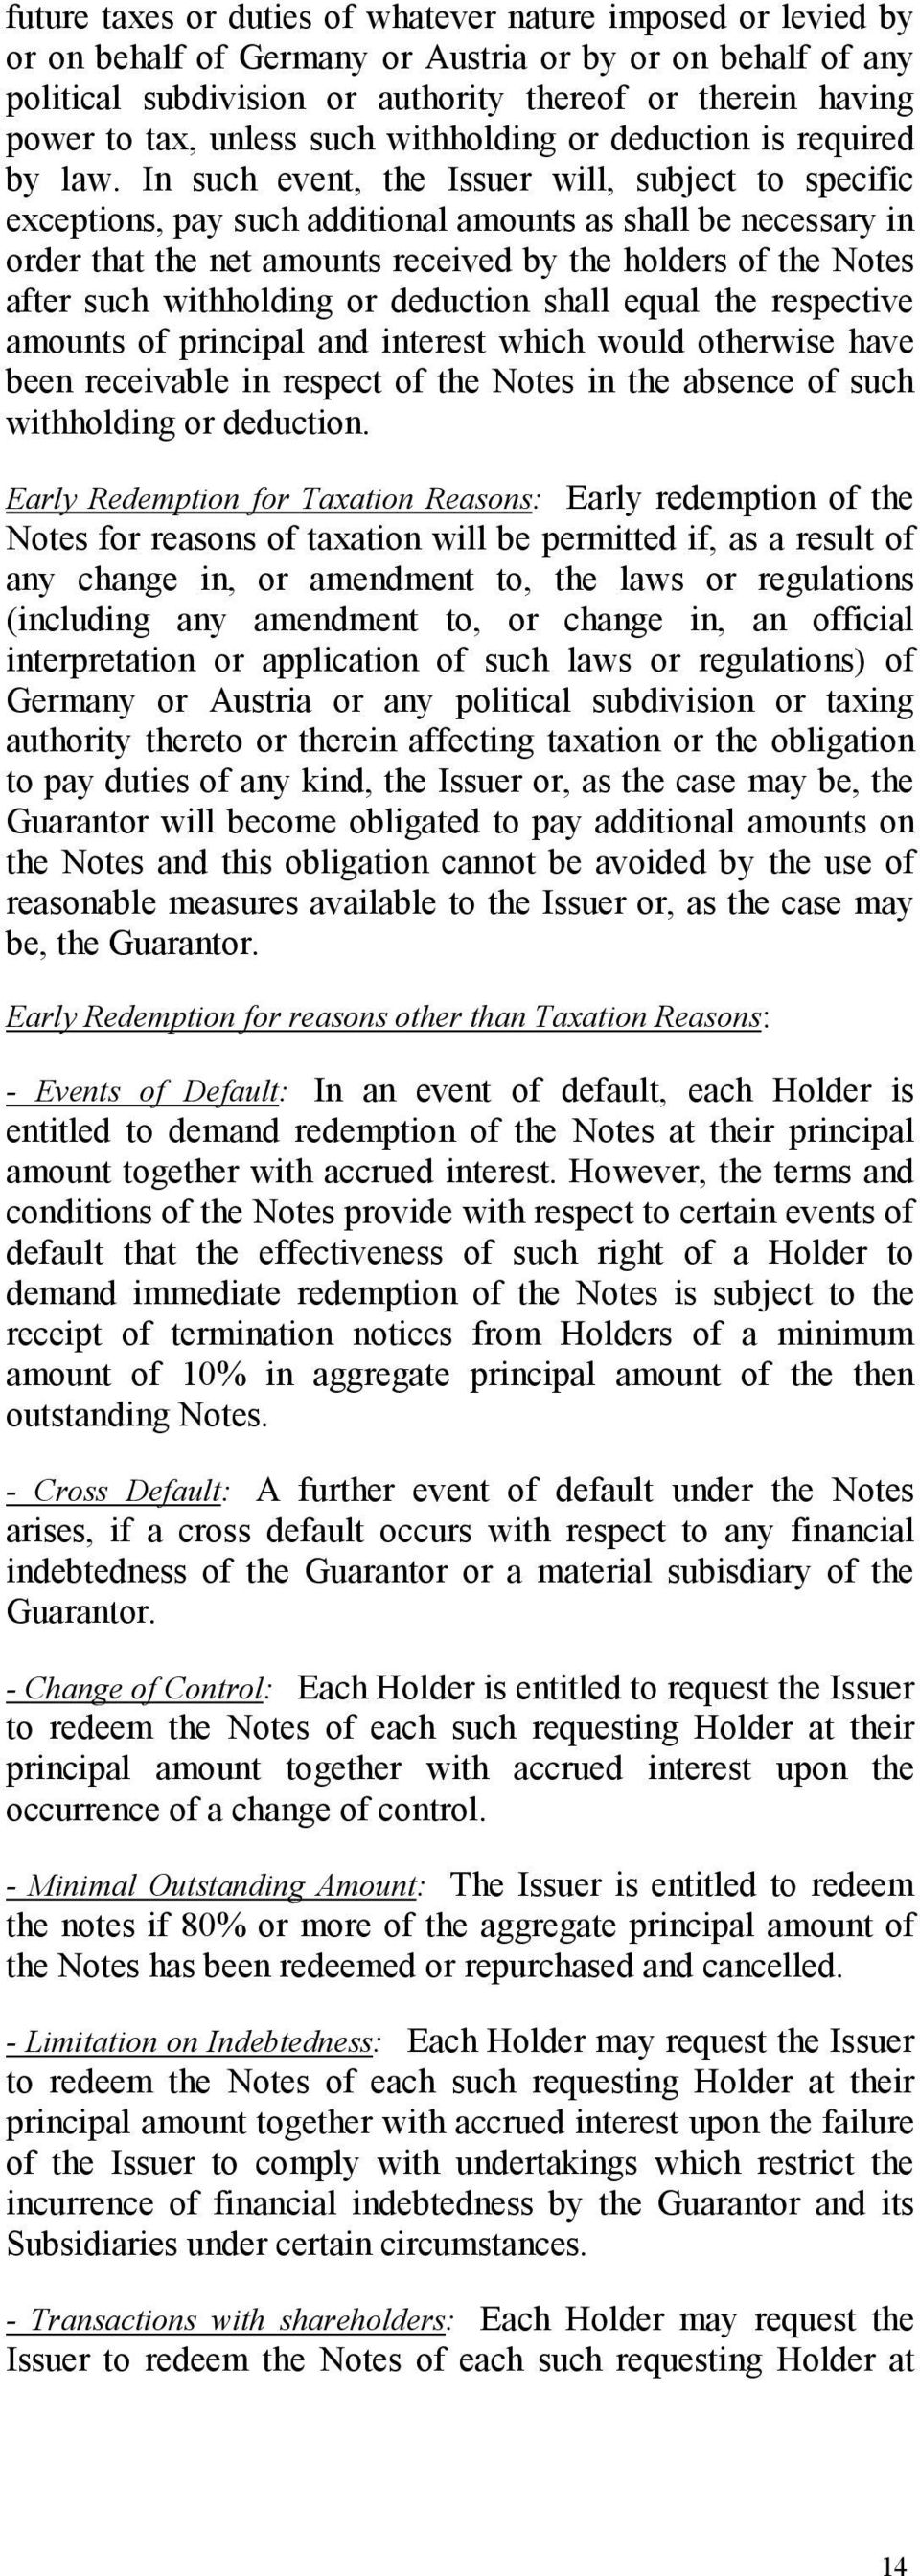 In such event, the Issuer will, subject to specific exceptions, pay such additional amounts as shall be necessary in order that the net amounts received by the holders of the Notes after such